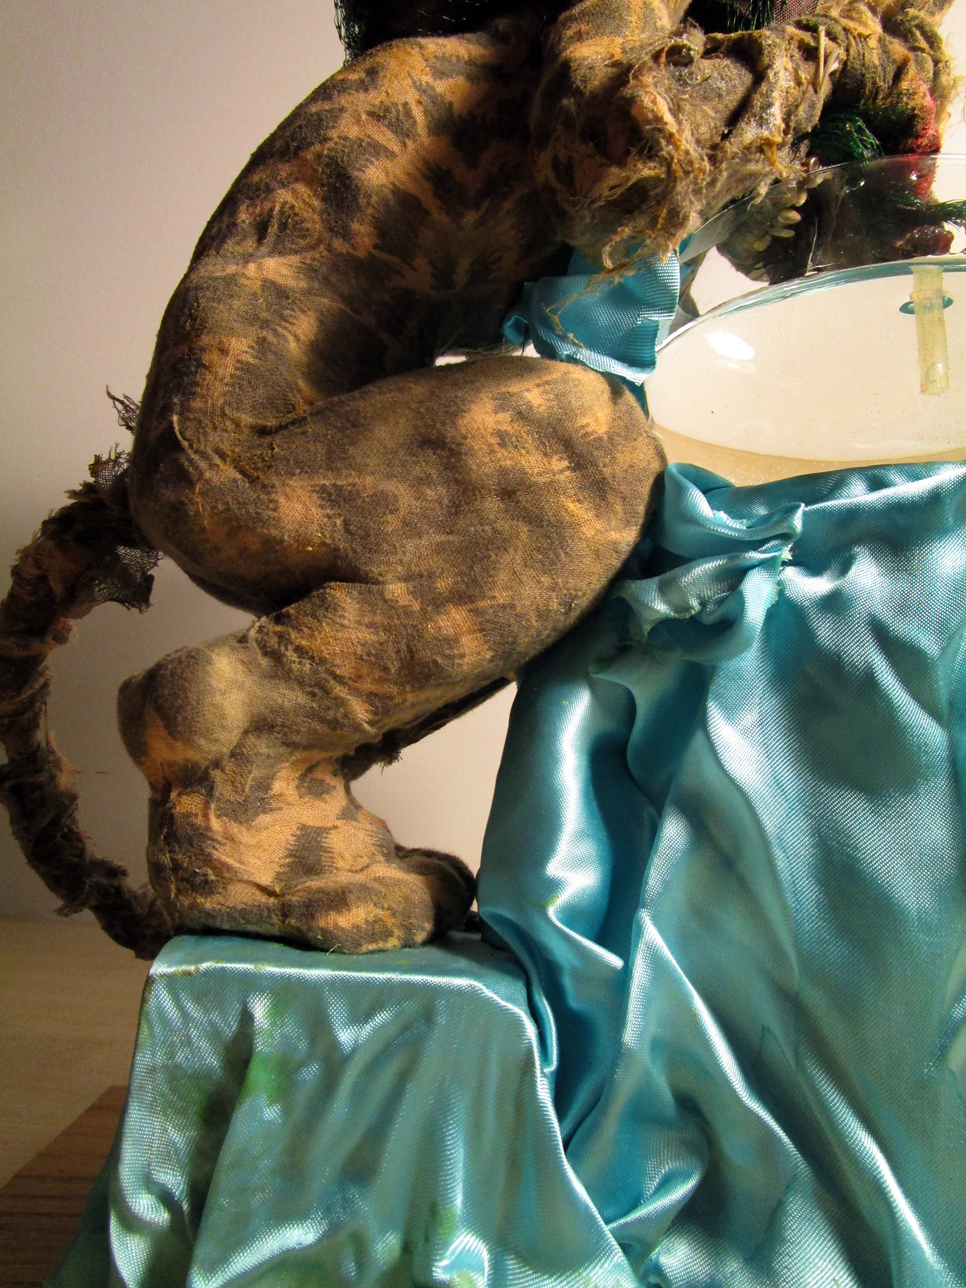 Artistic toy - the toy cat - cat toy - photo 06.